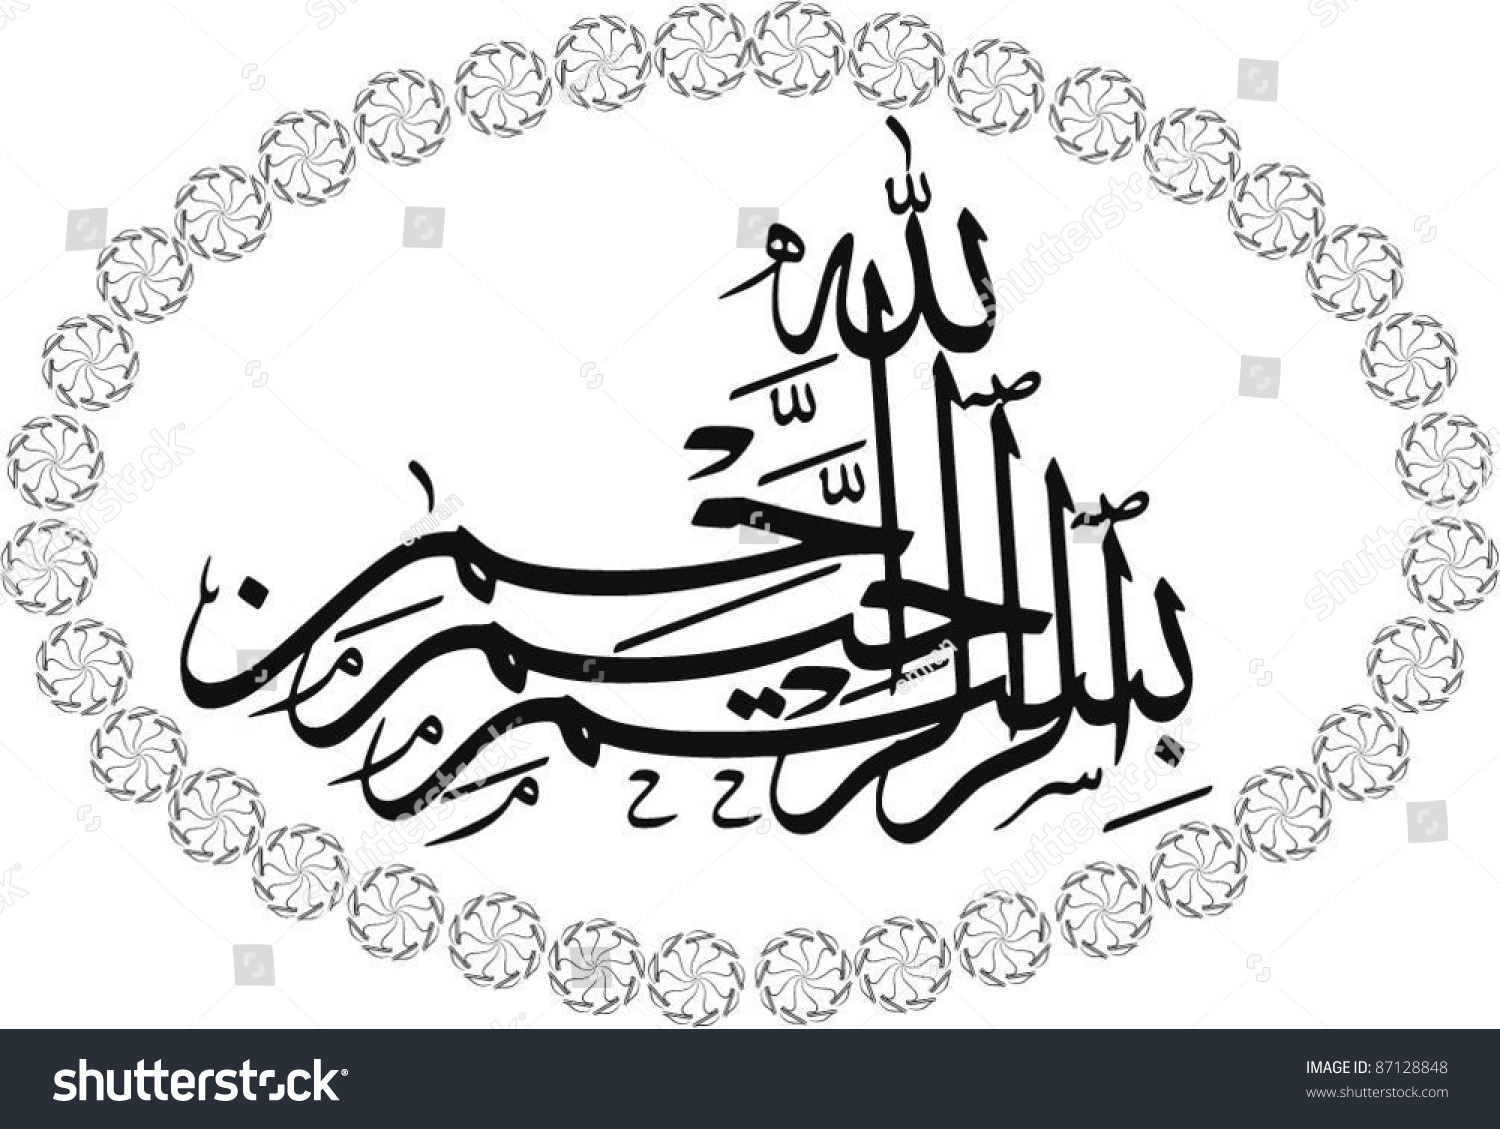 Islamic vector of bismillah in the name of god in Bismillah calligraphy pictures